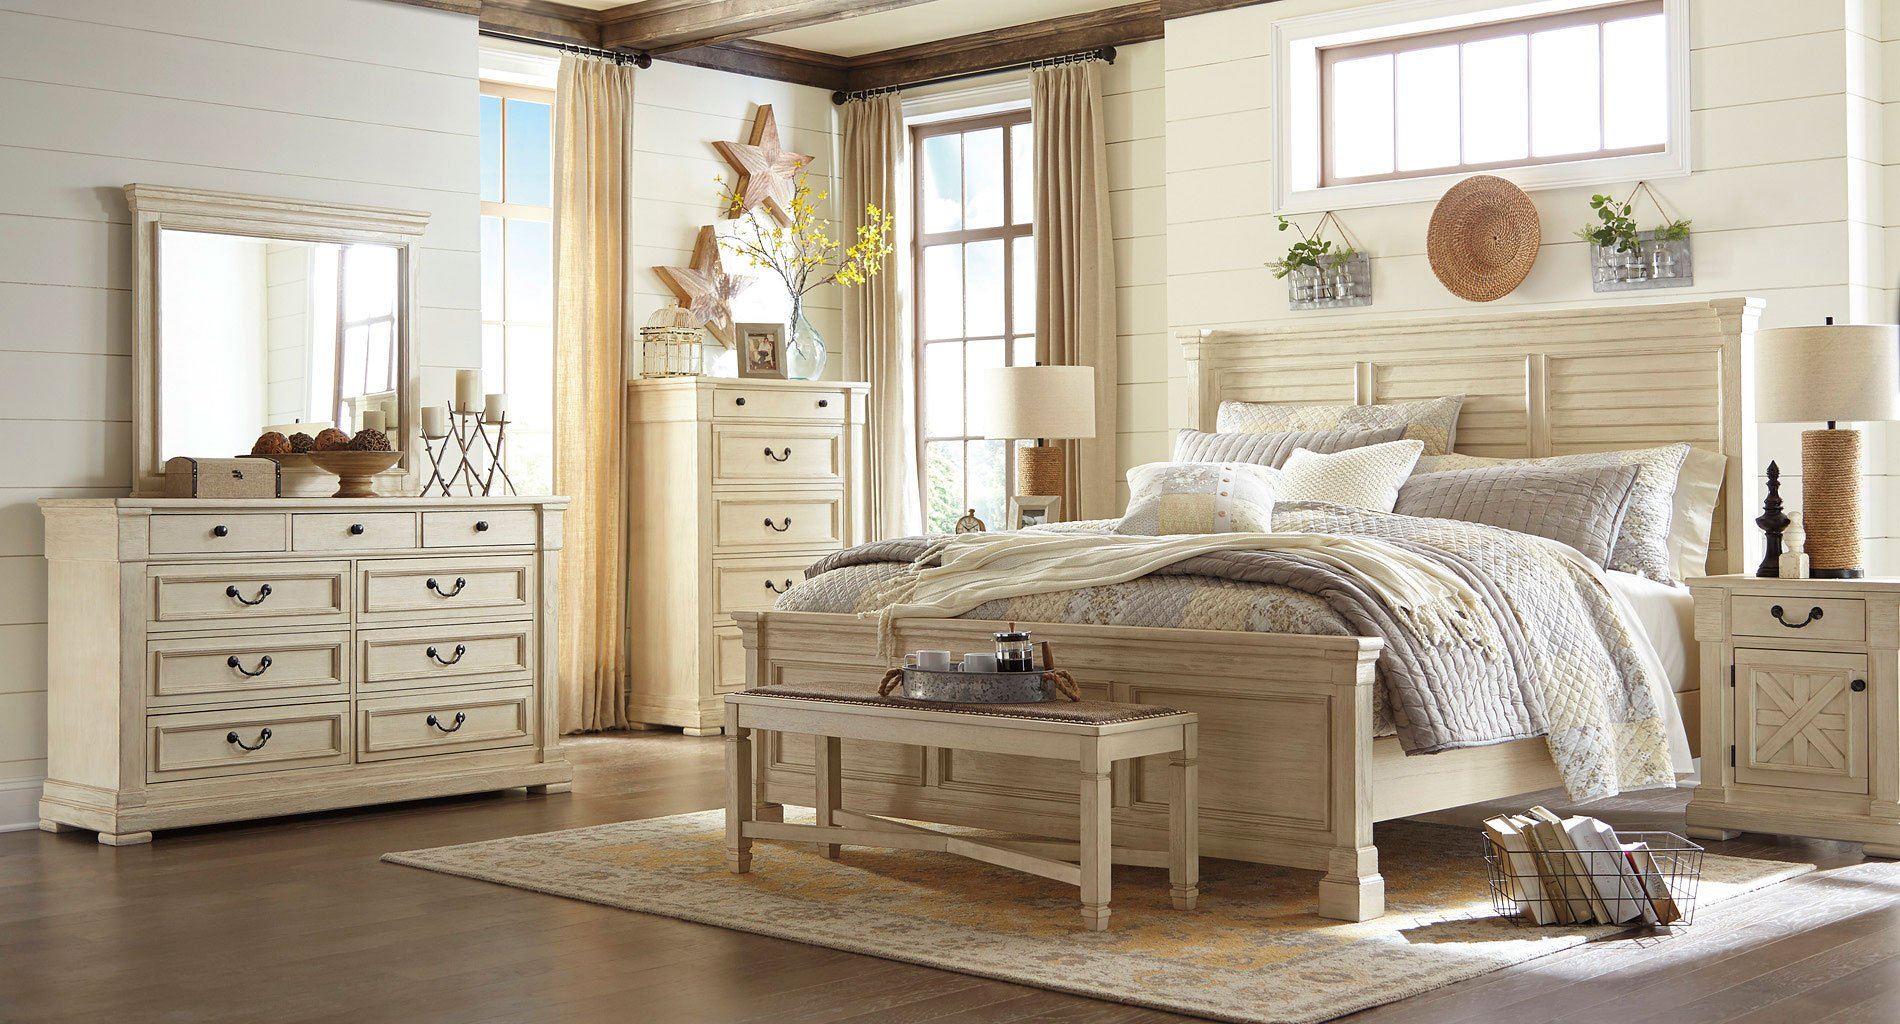 Bedroom Furniture Reviews: Bolanburg Louvered Bedroom Set Signature Design, 1 Reviews